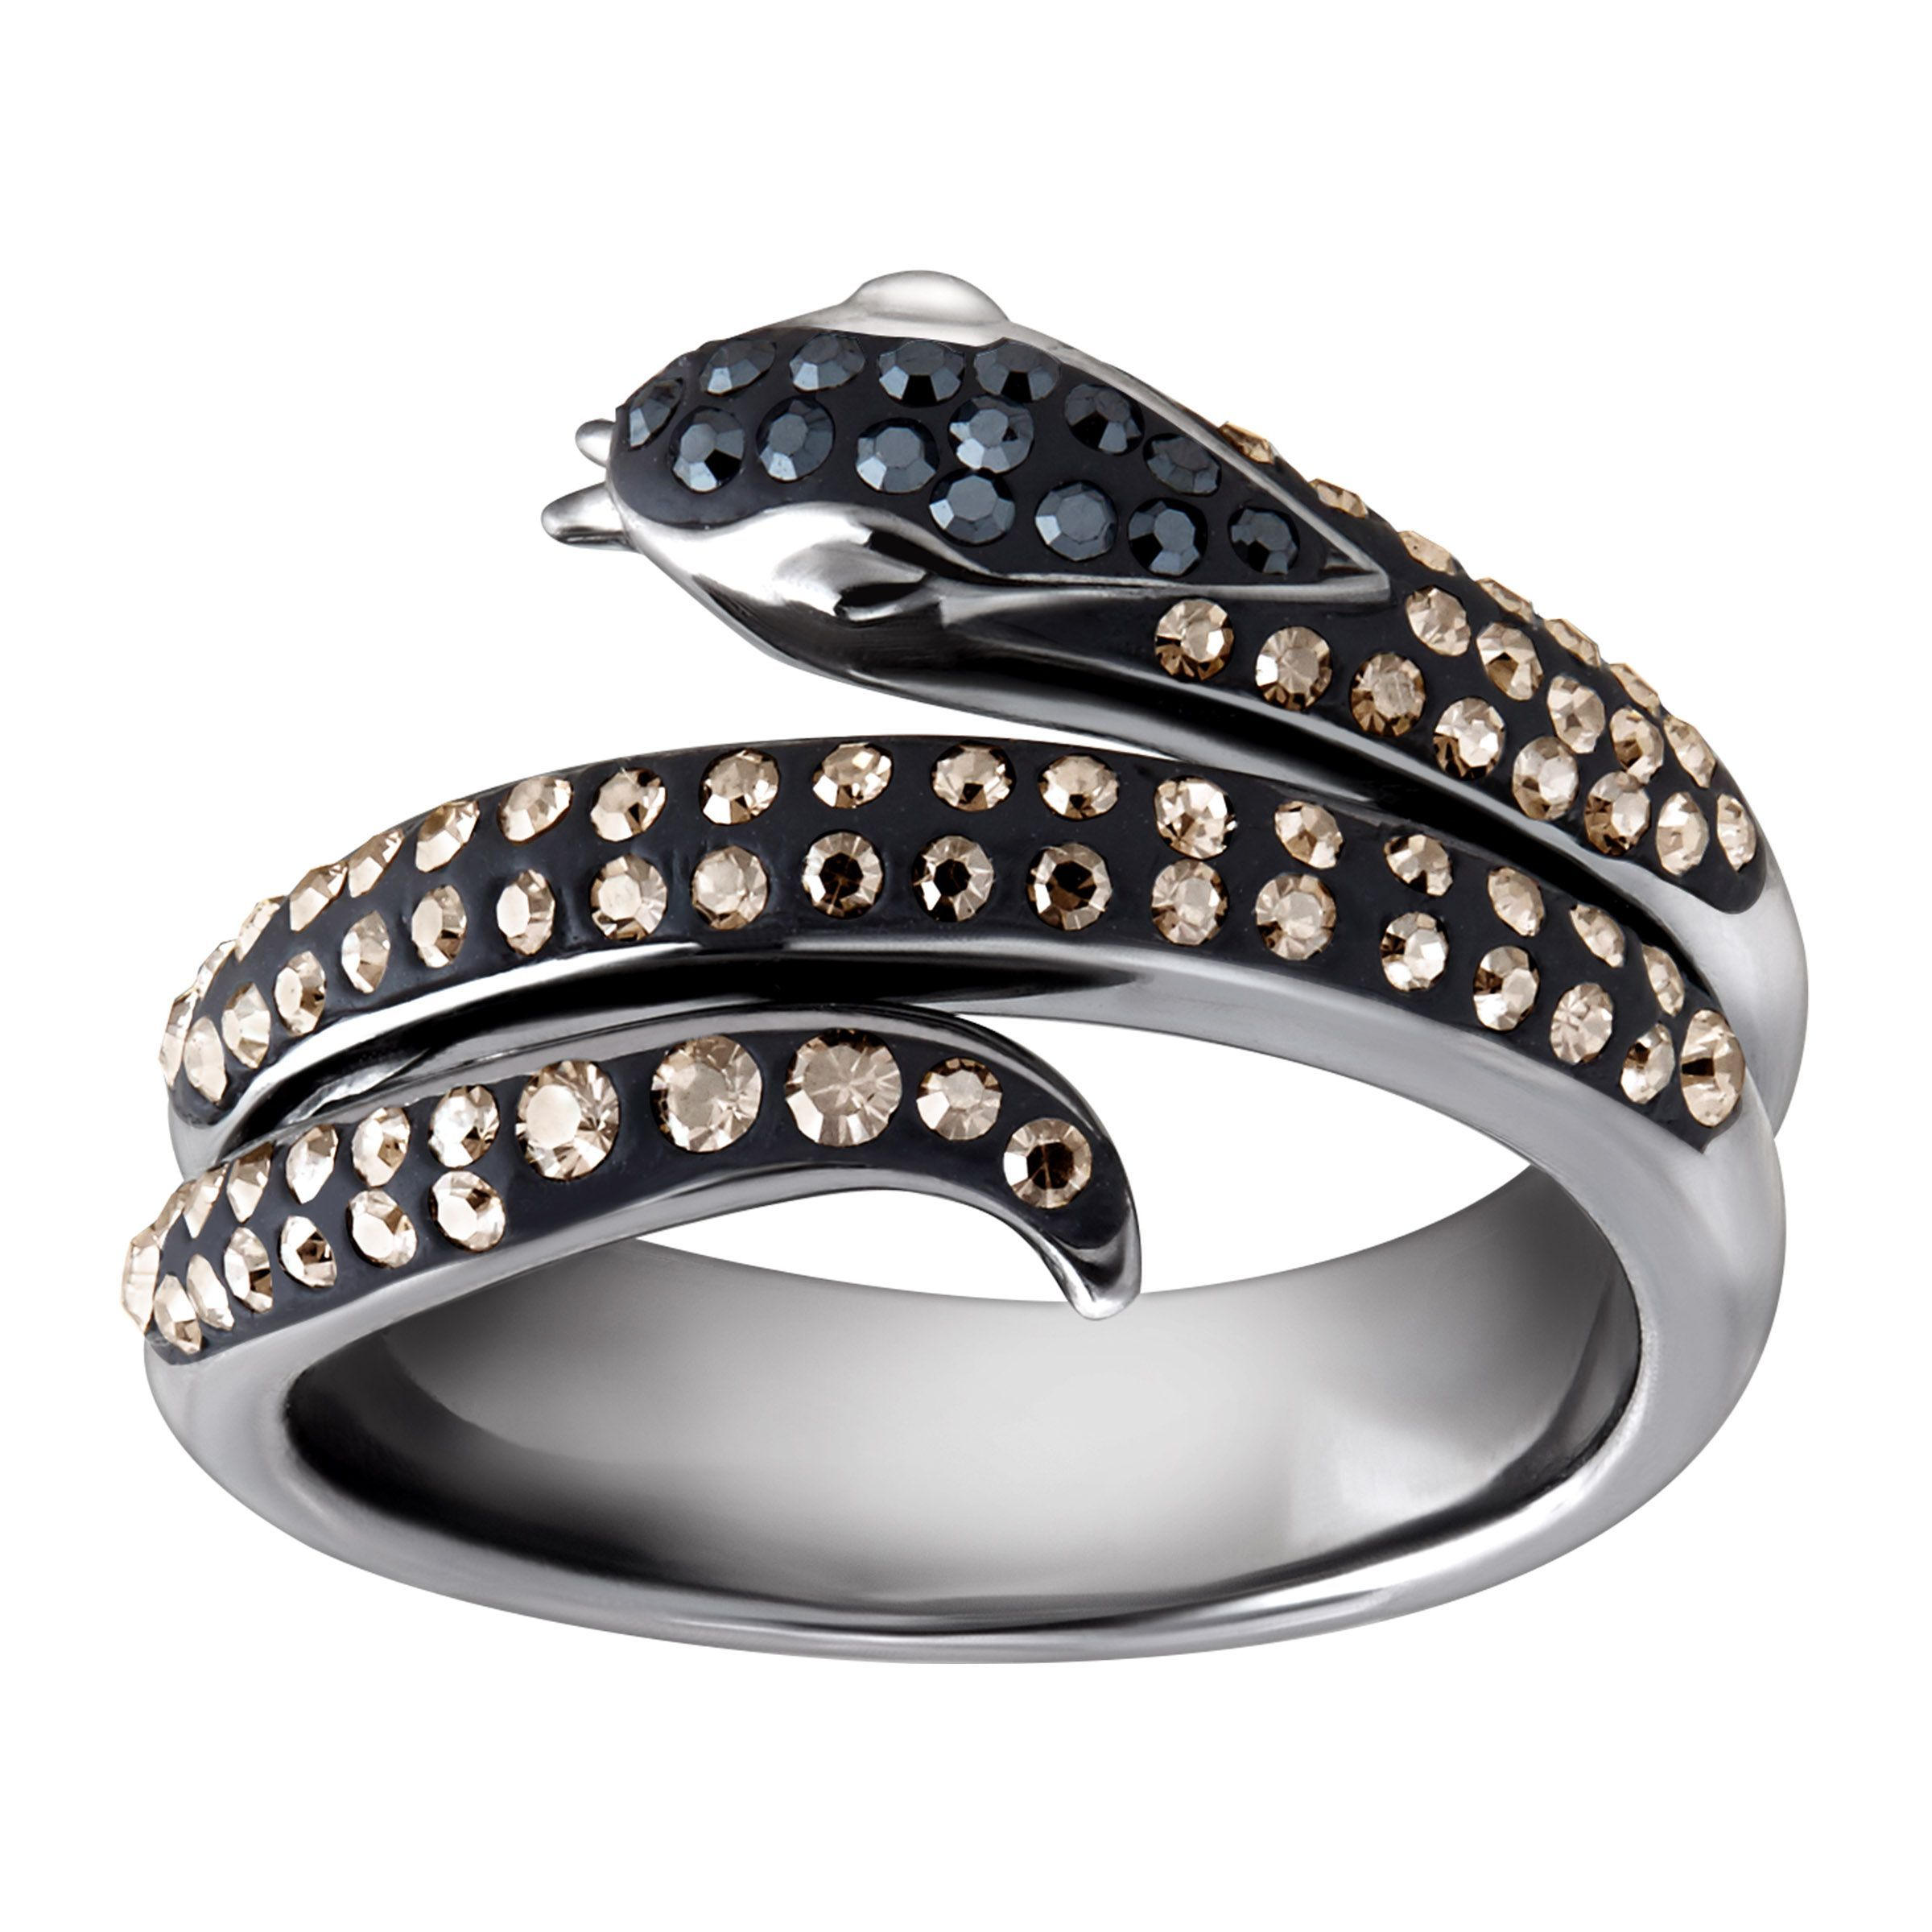 8bcca3a3e05df Details about Crystaluxe Snake Ring w/ Swarovski Crystals Black  Rhodium-Plated Sterling Silver